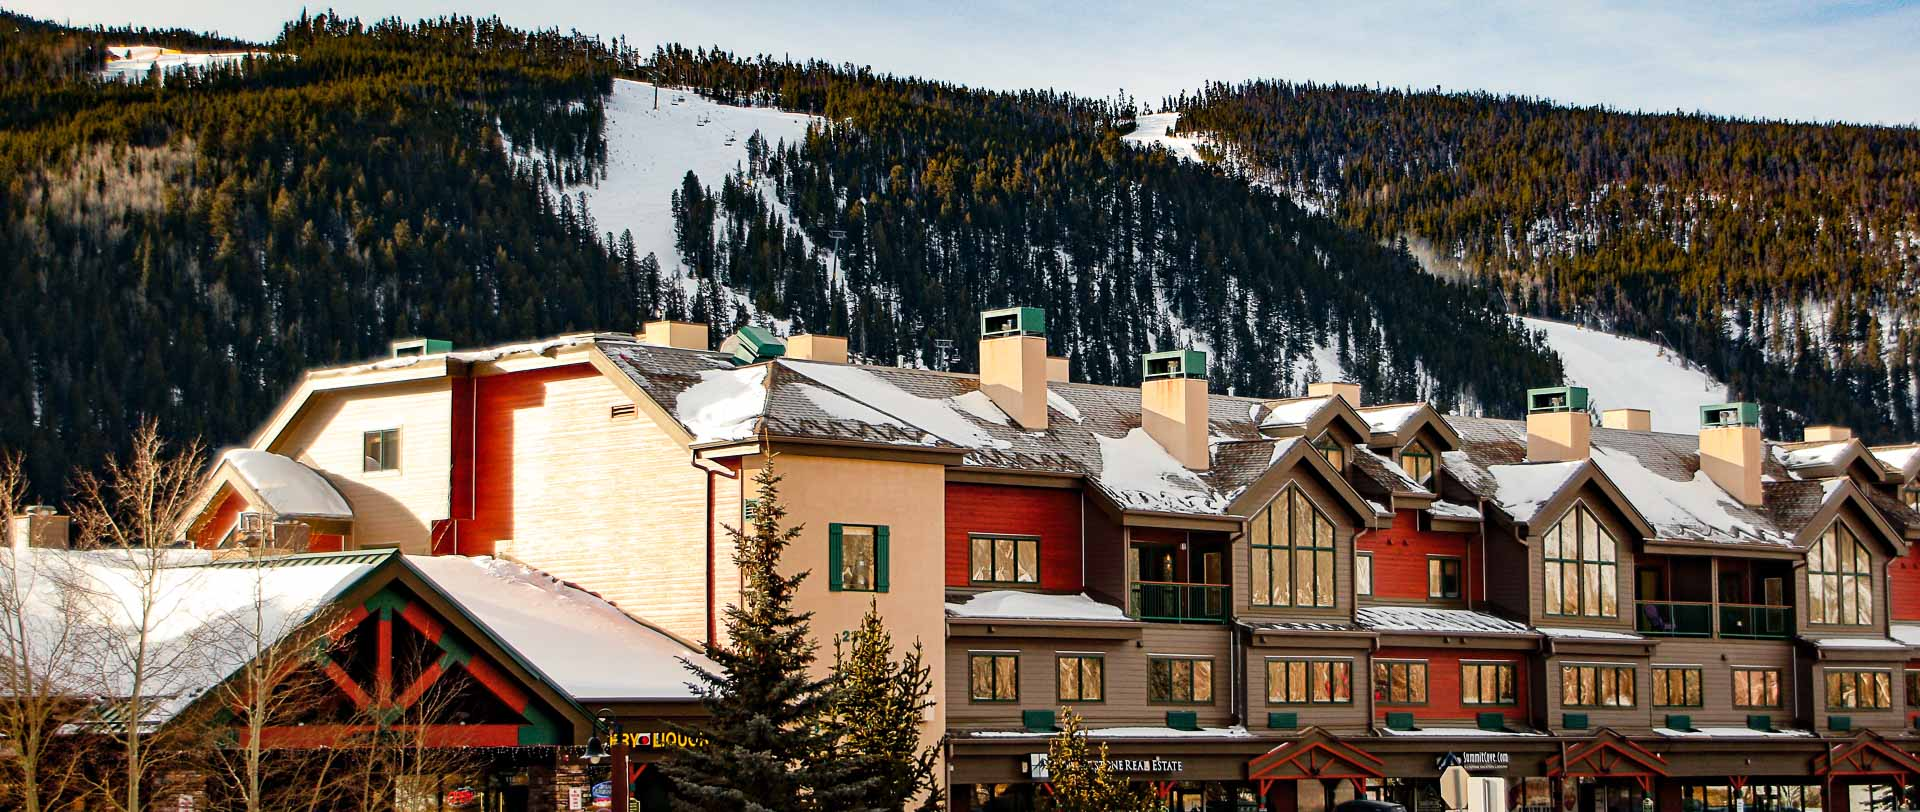 Keystone Condo Rentals, GreatRentalKeystone 4br4ba by Owner Vacation Rental, 